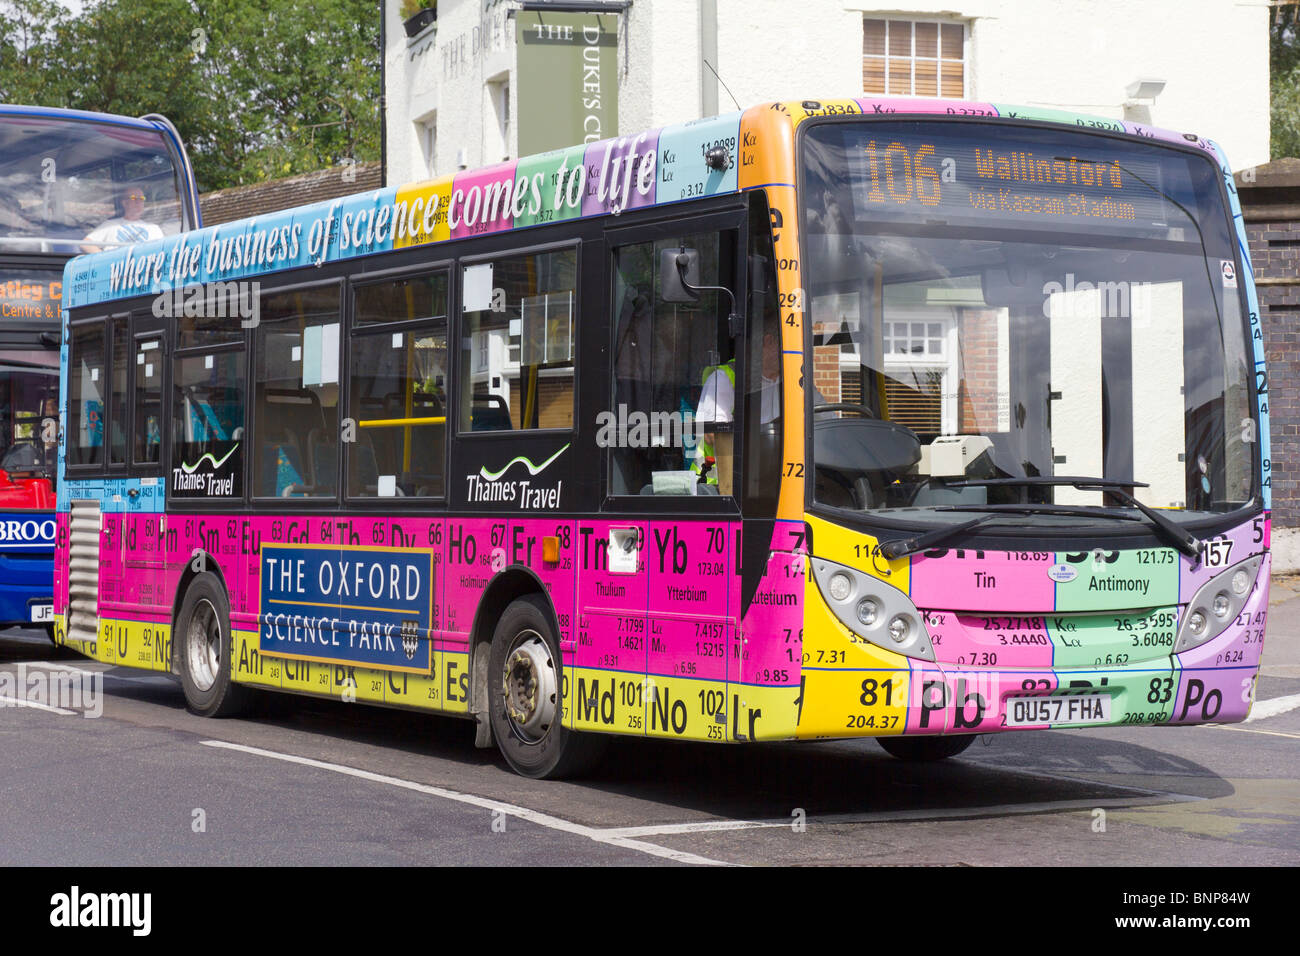 Bus with periodic table of elements oxford stock photo 30607497 bus with periodic table of elements oxford urtaz Image collections